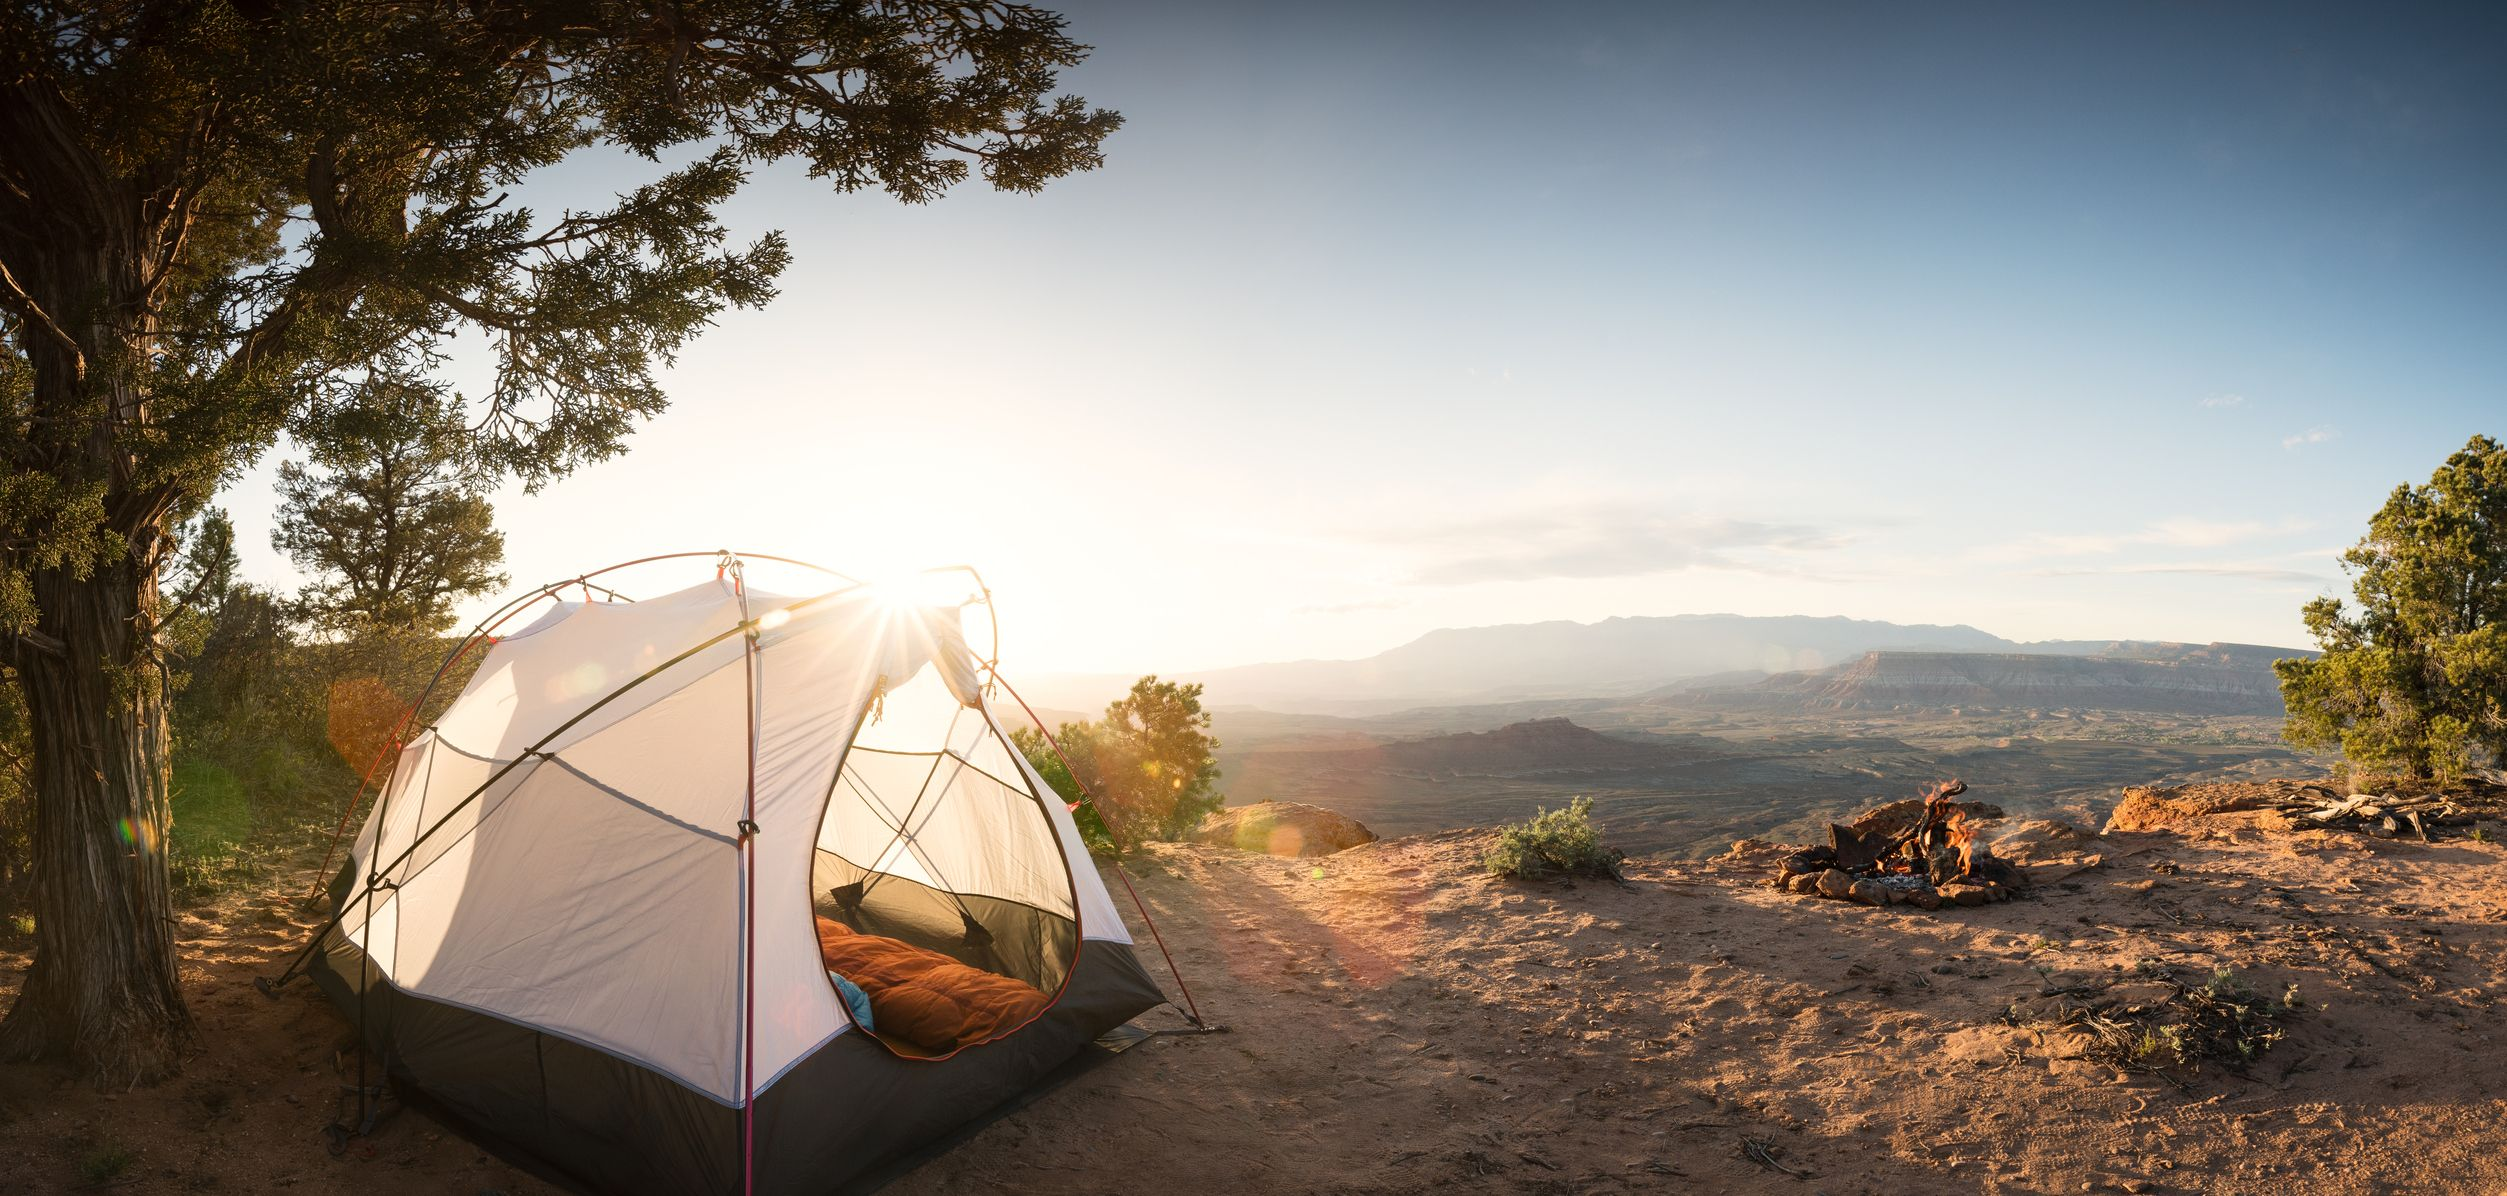 Tent C&ing Under a Pinon Tree in the Desert First Morning Light and a C&fire & 9 Best Tents of 2018 - Best Tents for Camping and Backpacking